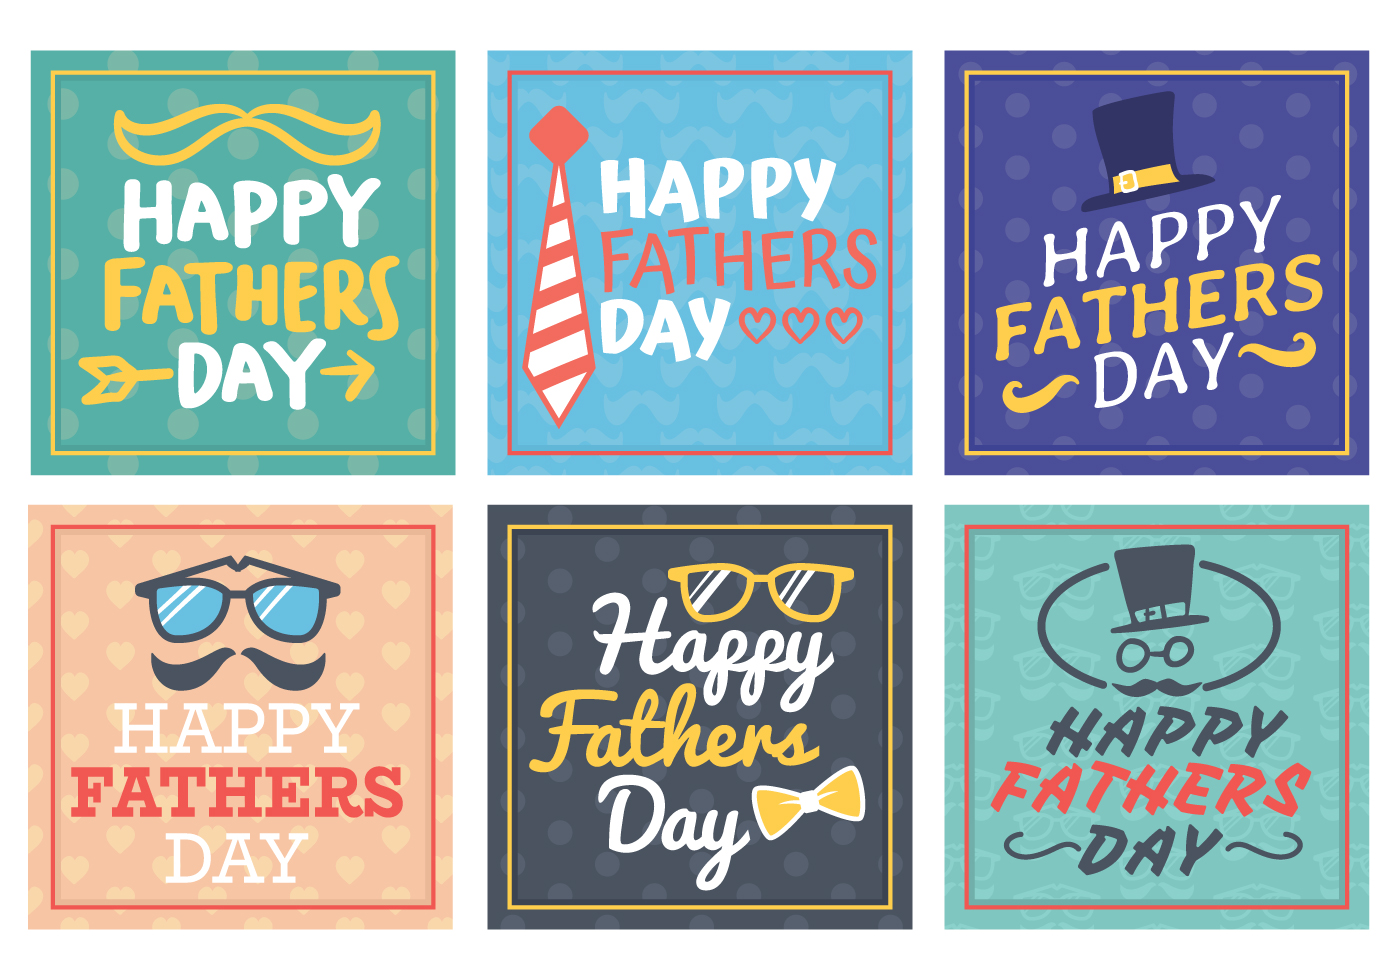 Happy Fathers Day Greetings Card Download Free Vector Art Stock